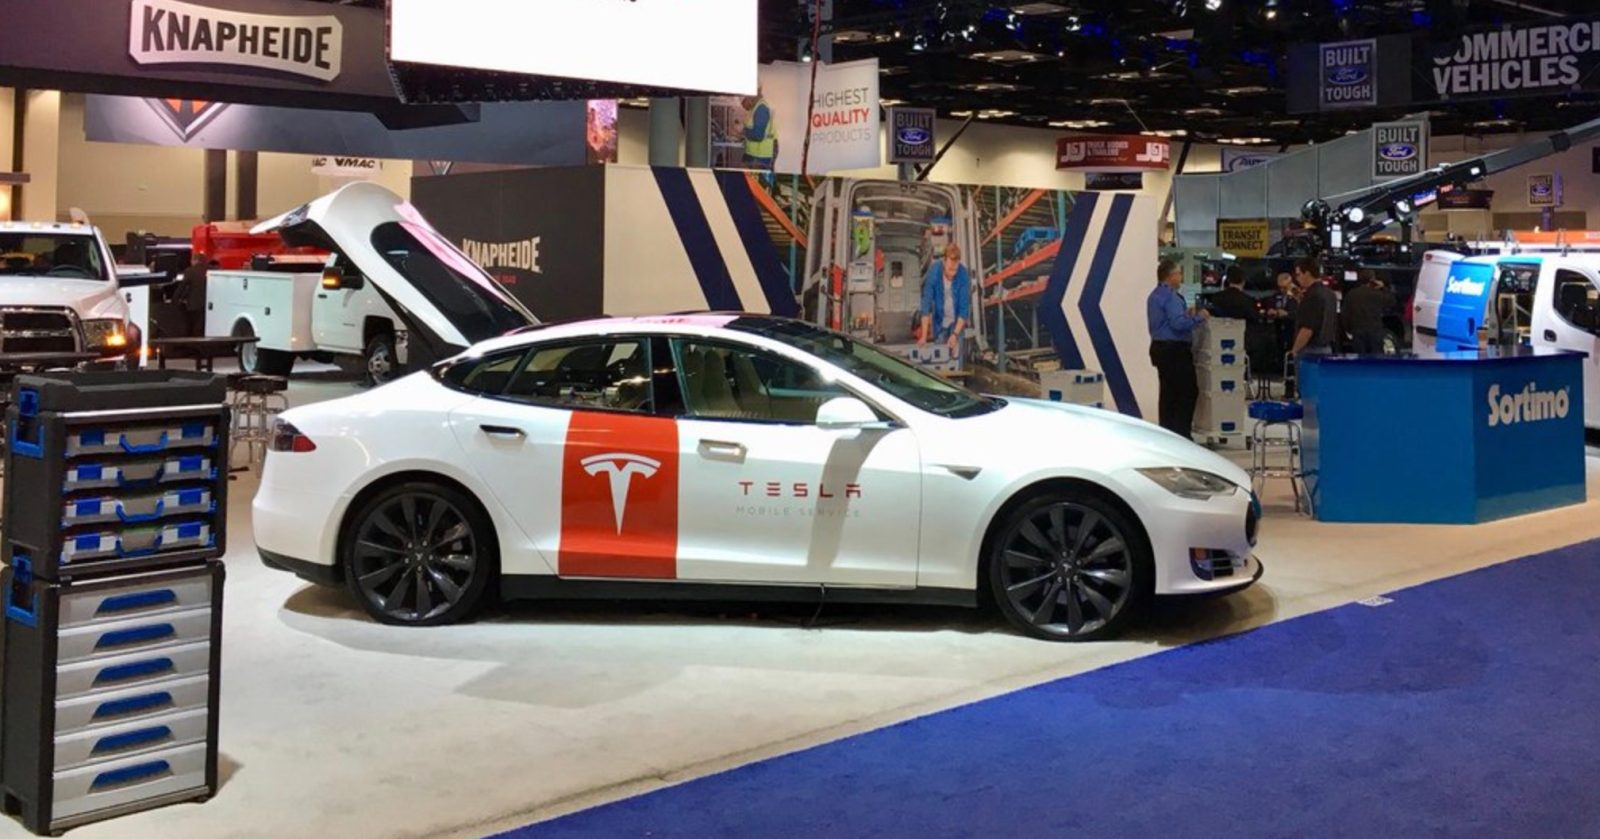 Closer Look At Tesla S New Custom Model Mobile Service Vehicle